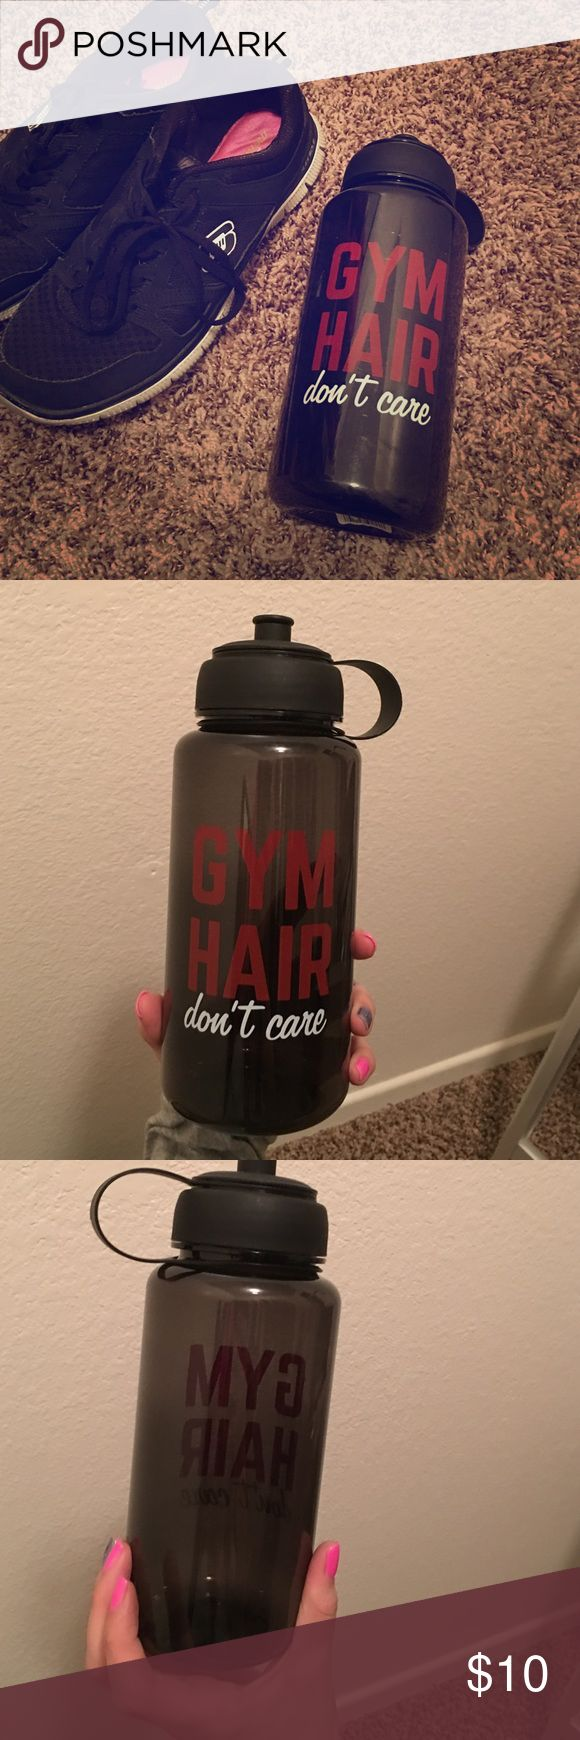 """""""Gym hair don't care"""" water bottle Super cute """"Gym hair don't care"""" water bottle. Never used 👍🏼 only thing is the tag is ripped off. Accessories"""